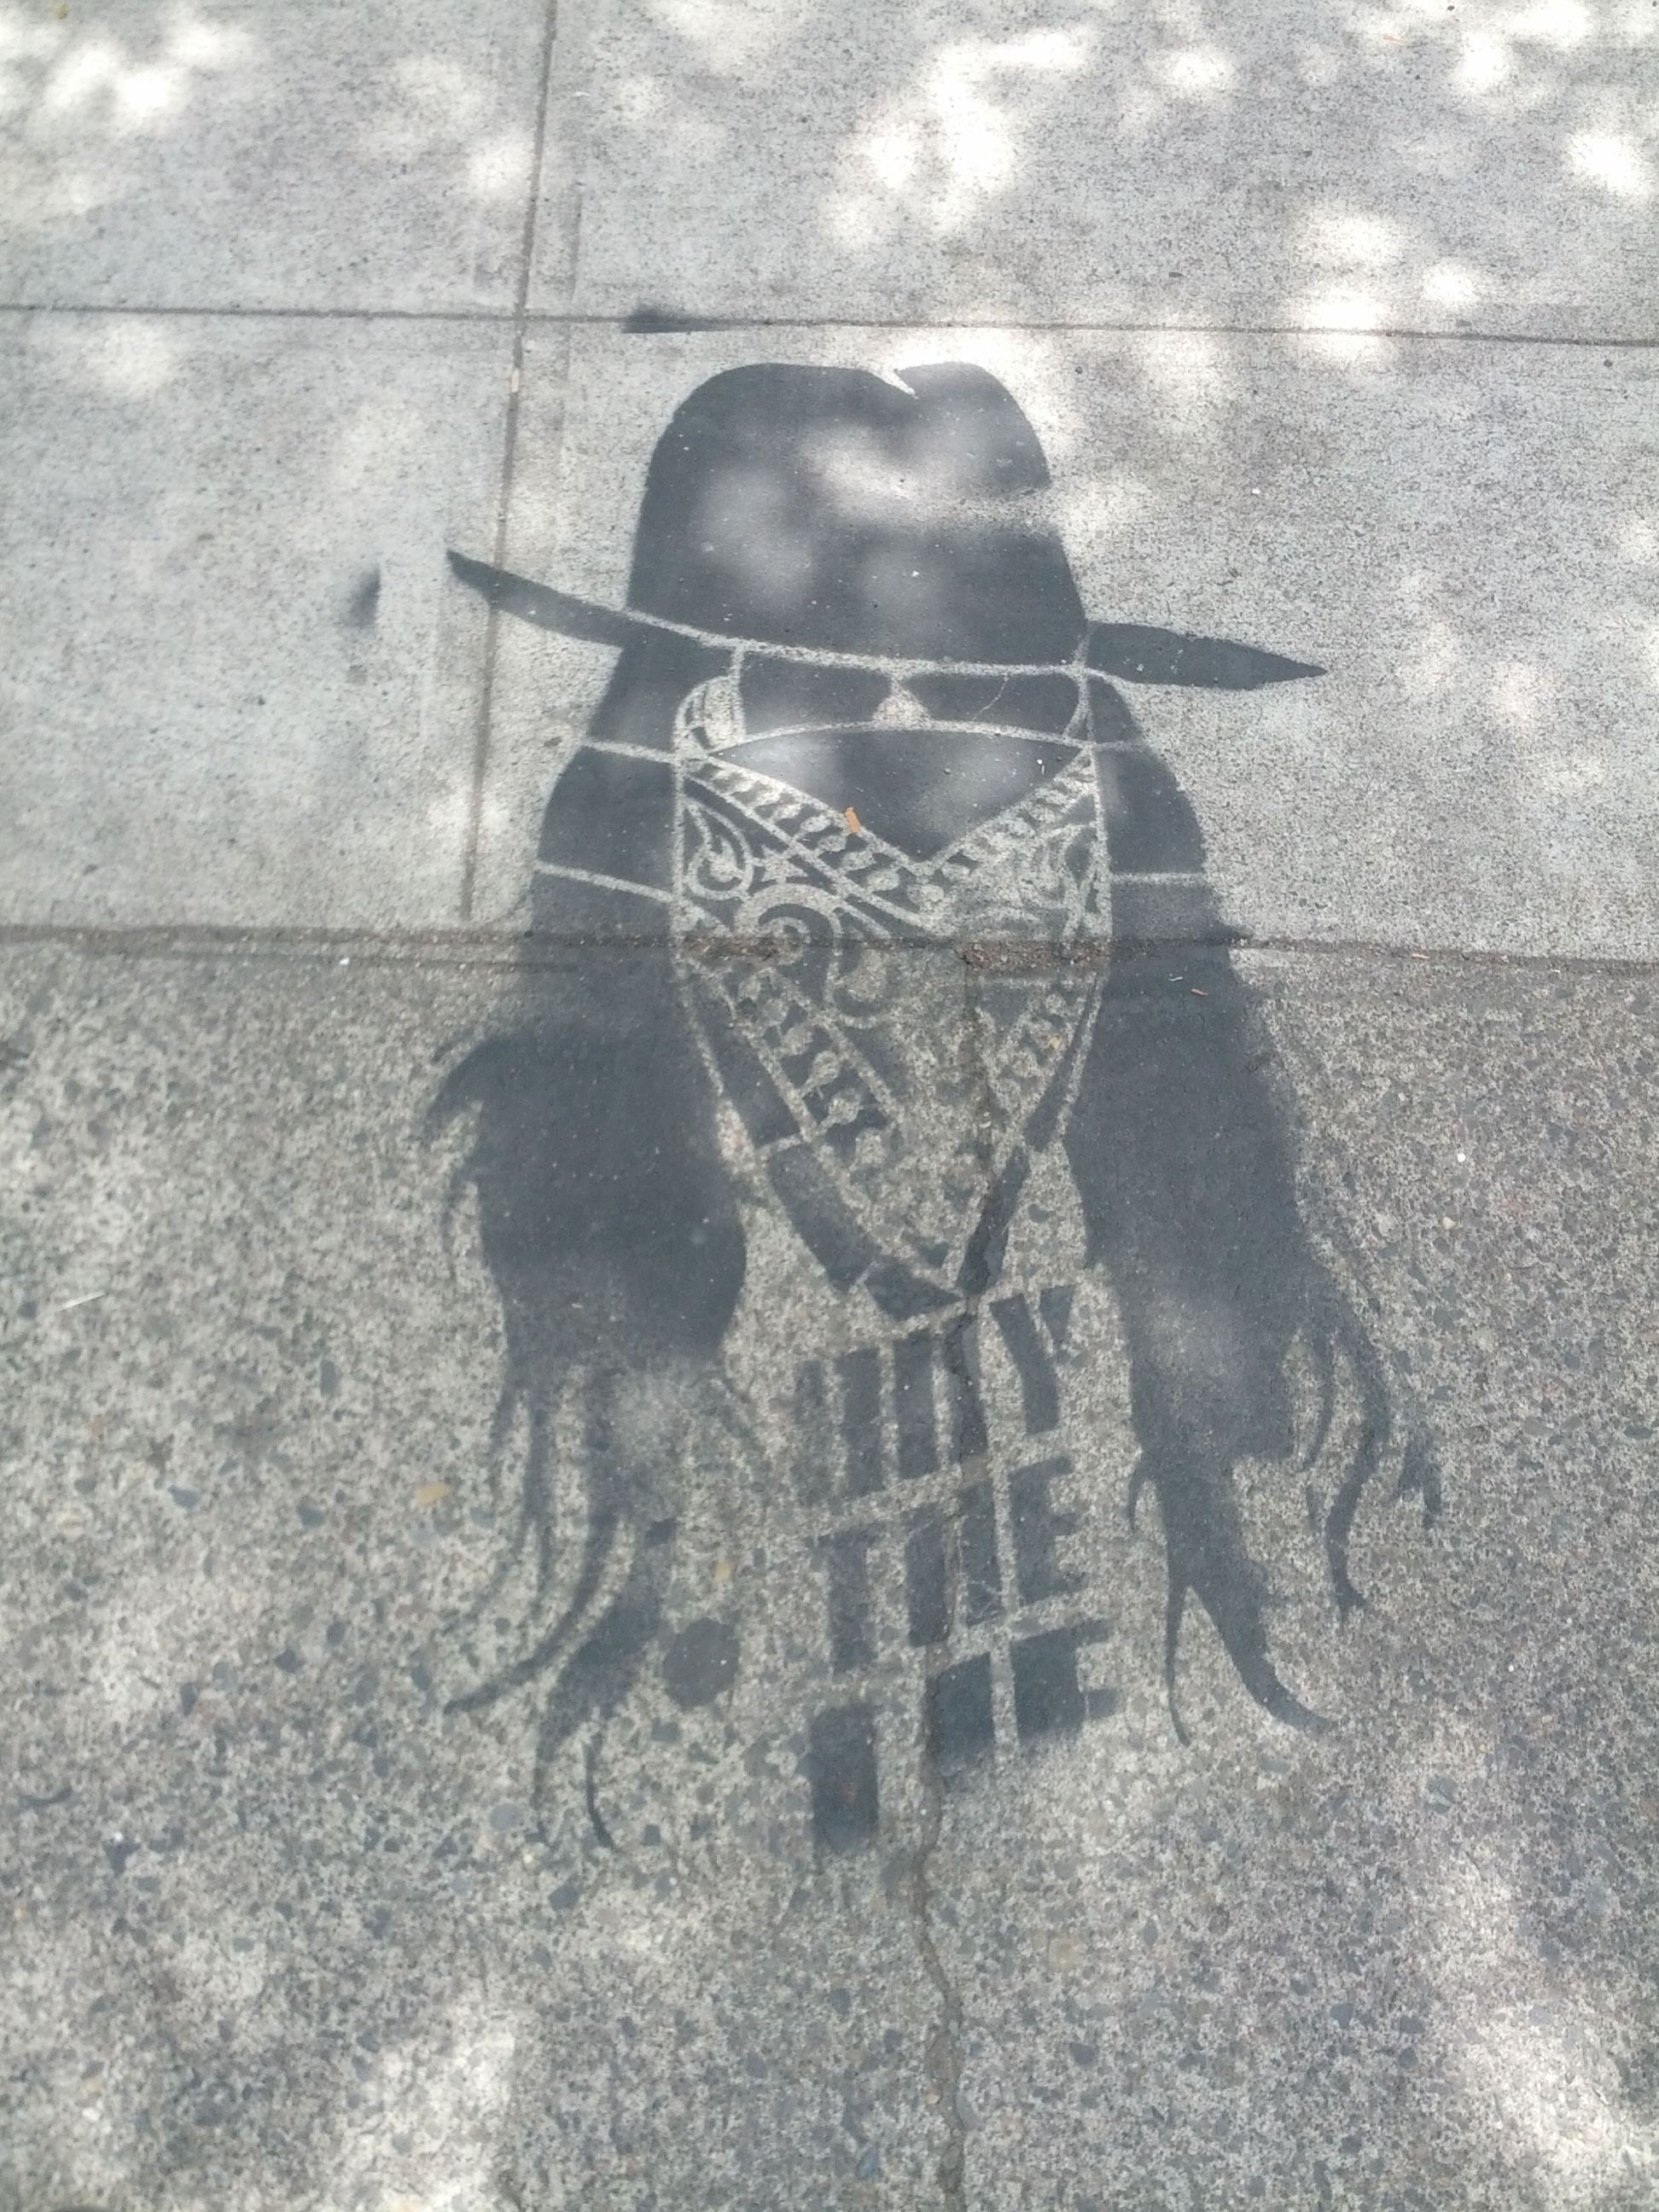 pdx_sidewalk_graffiti.jpg